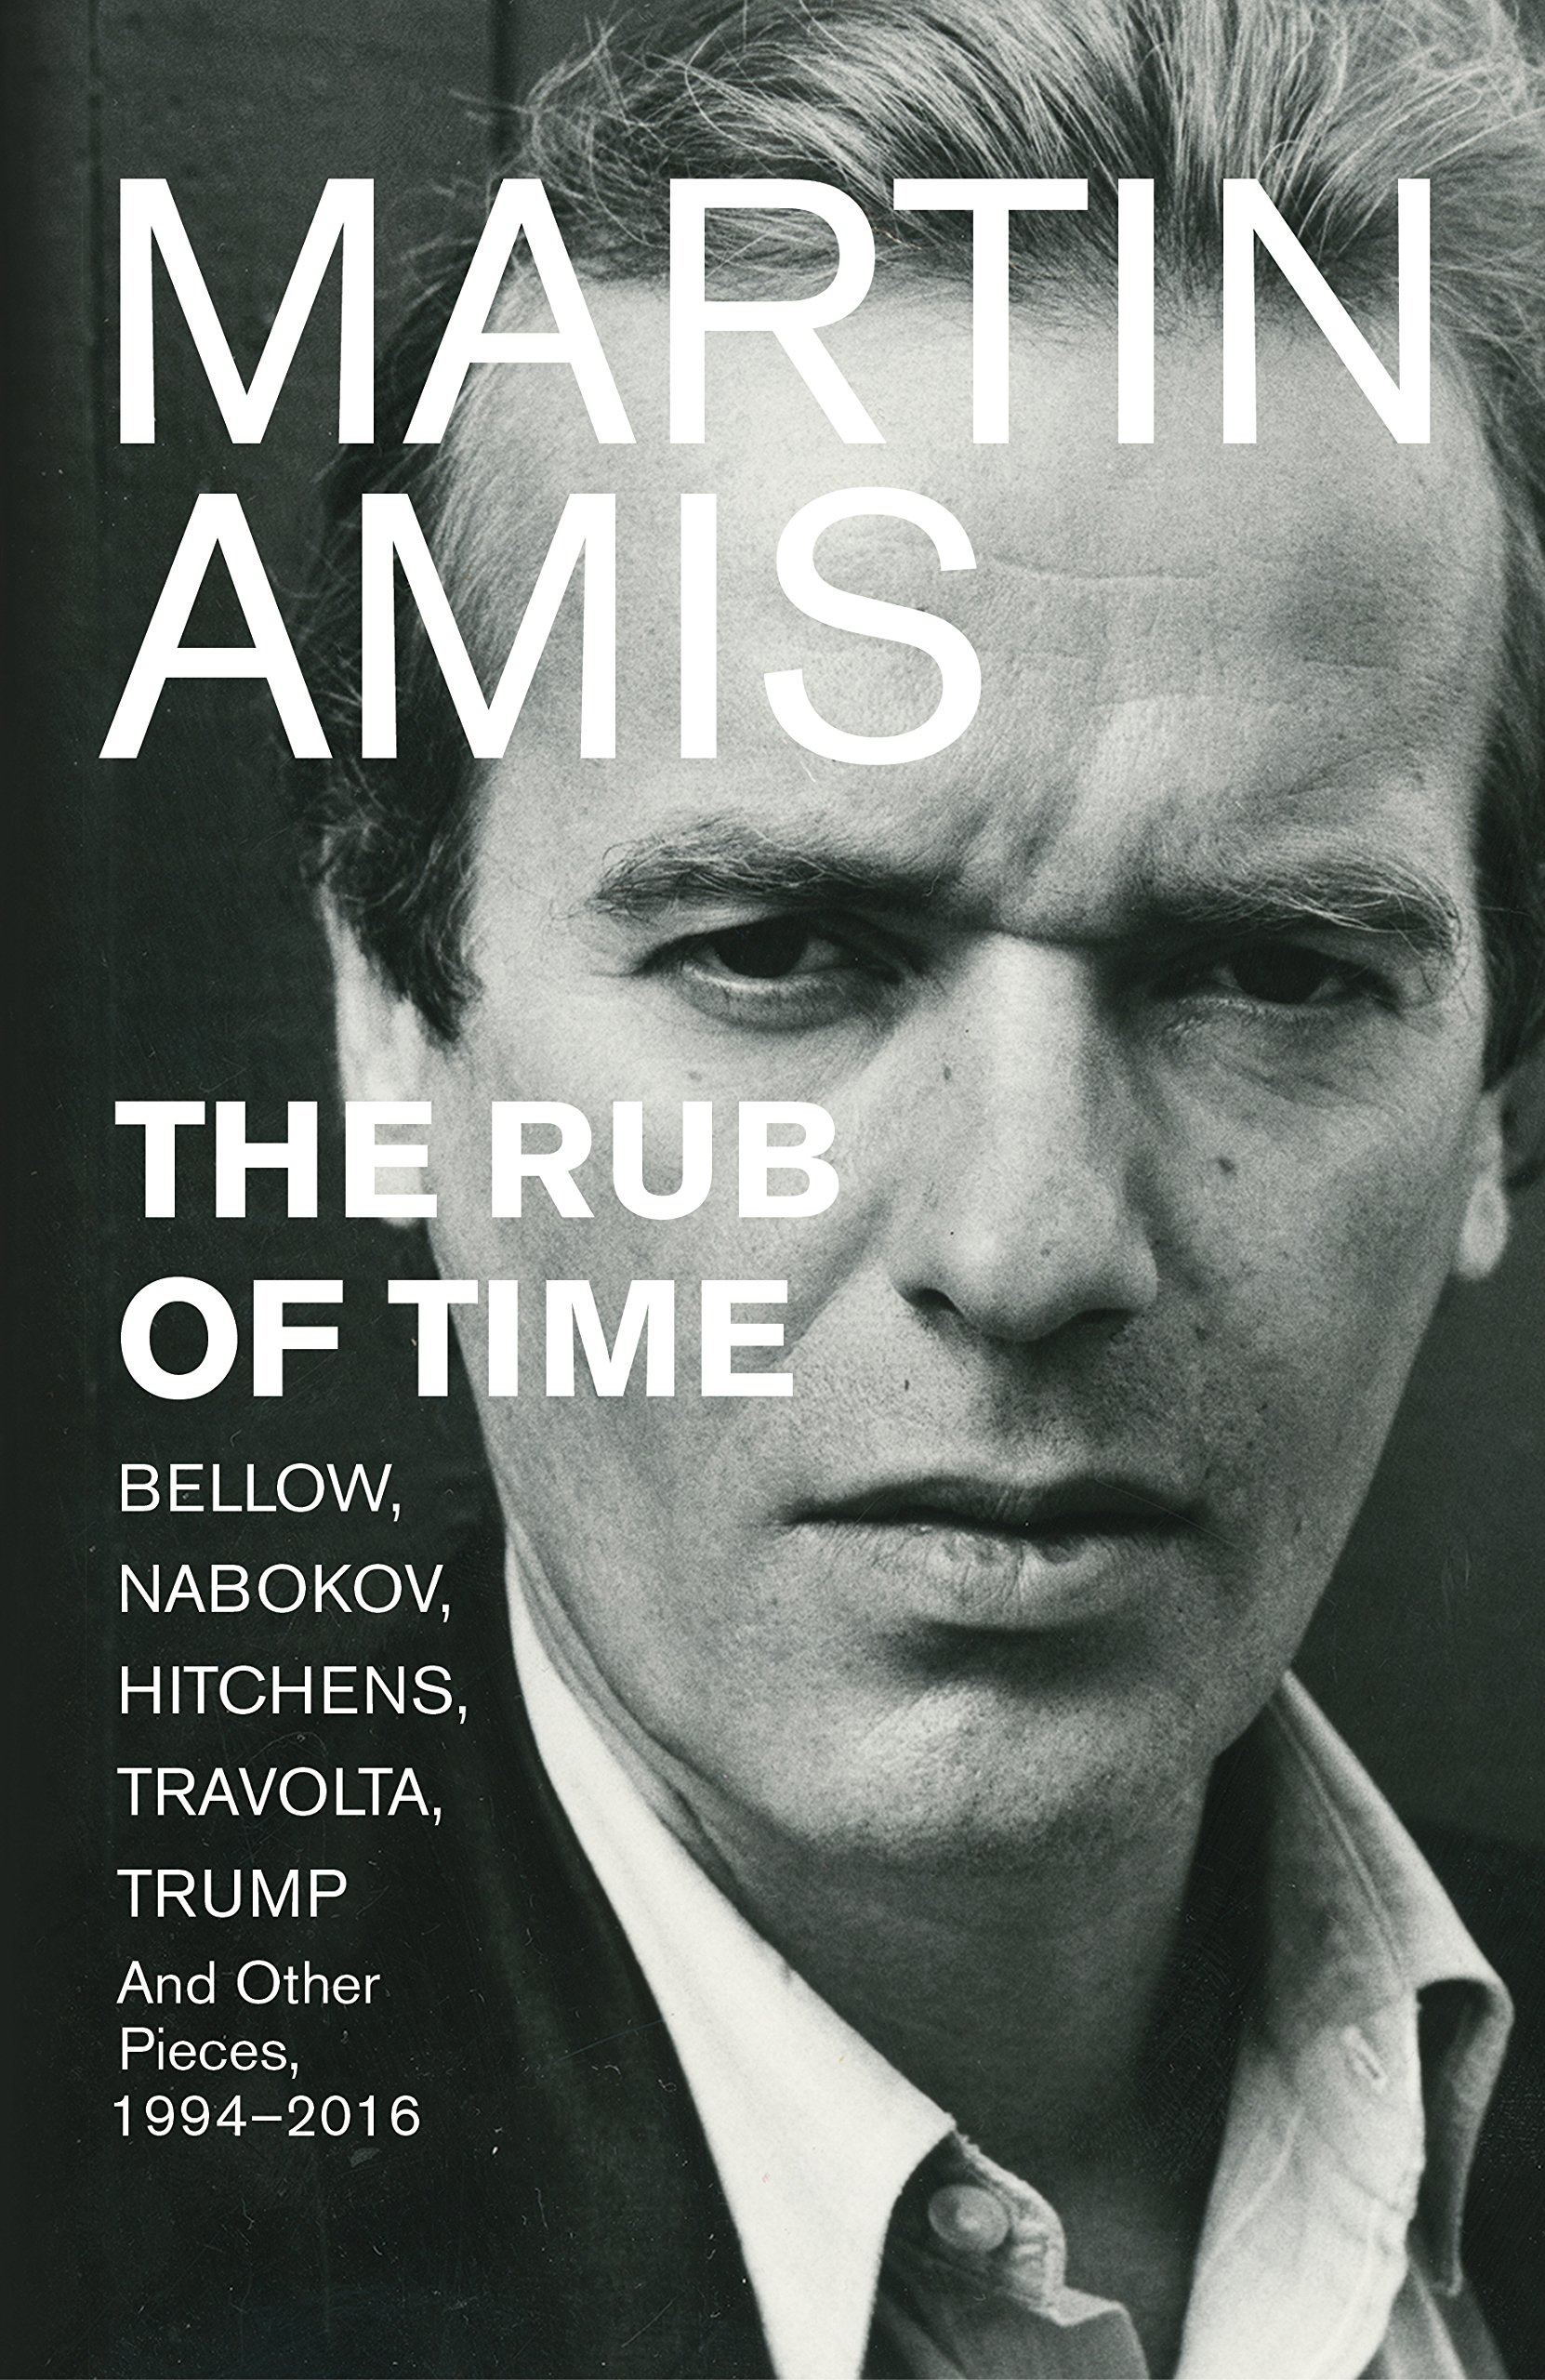 Image result for martin amis the rub of time